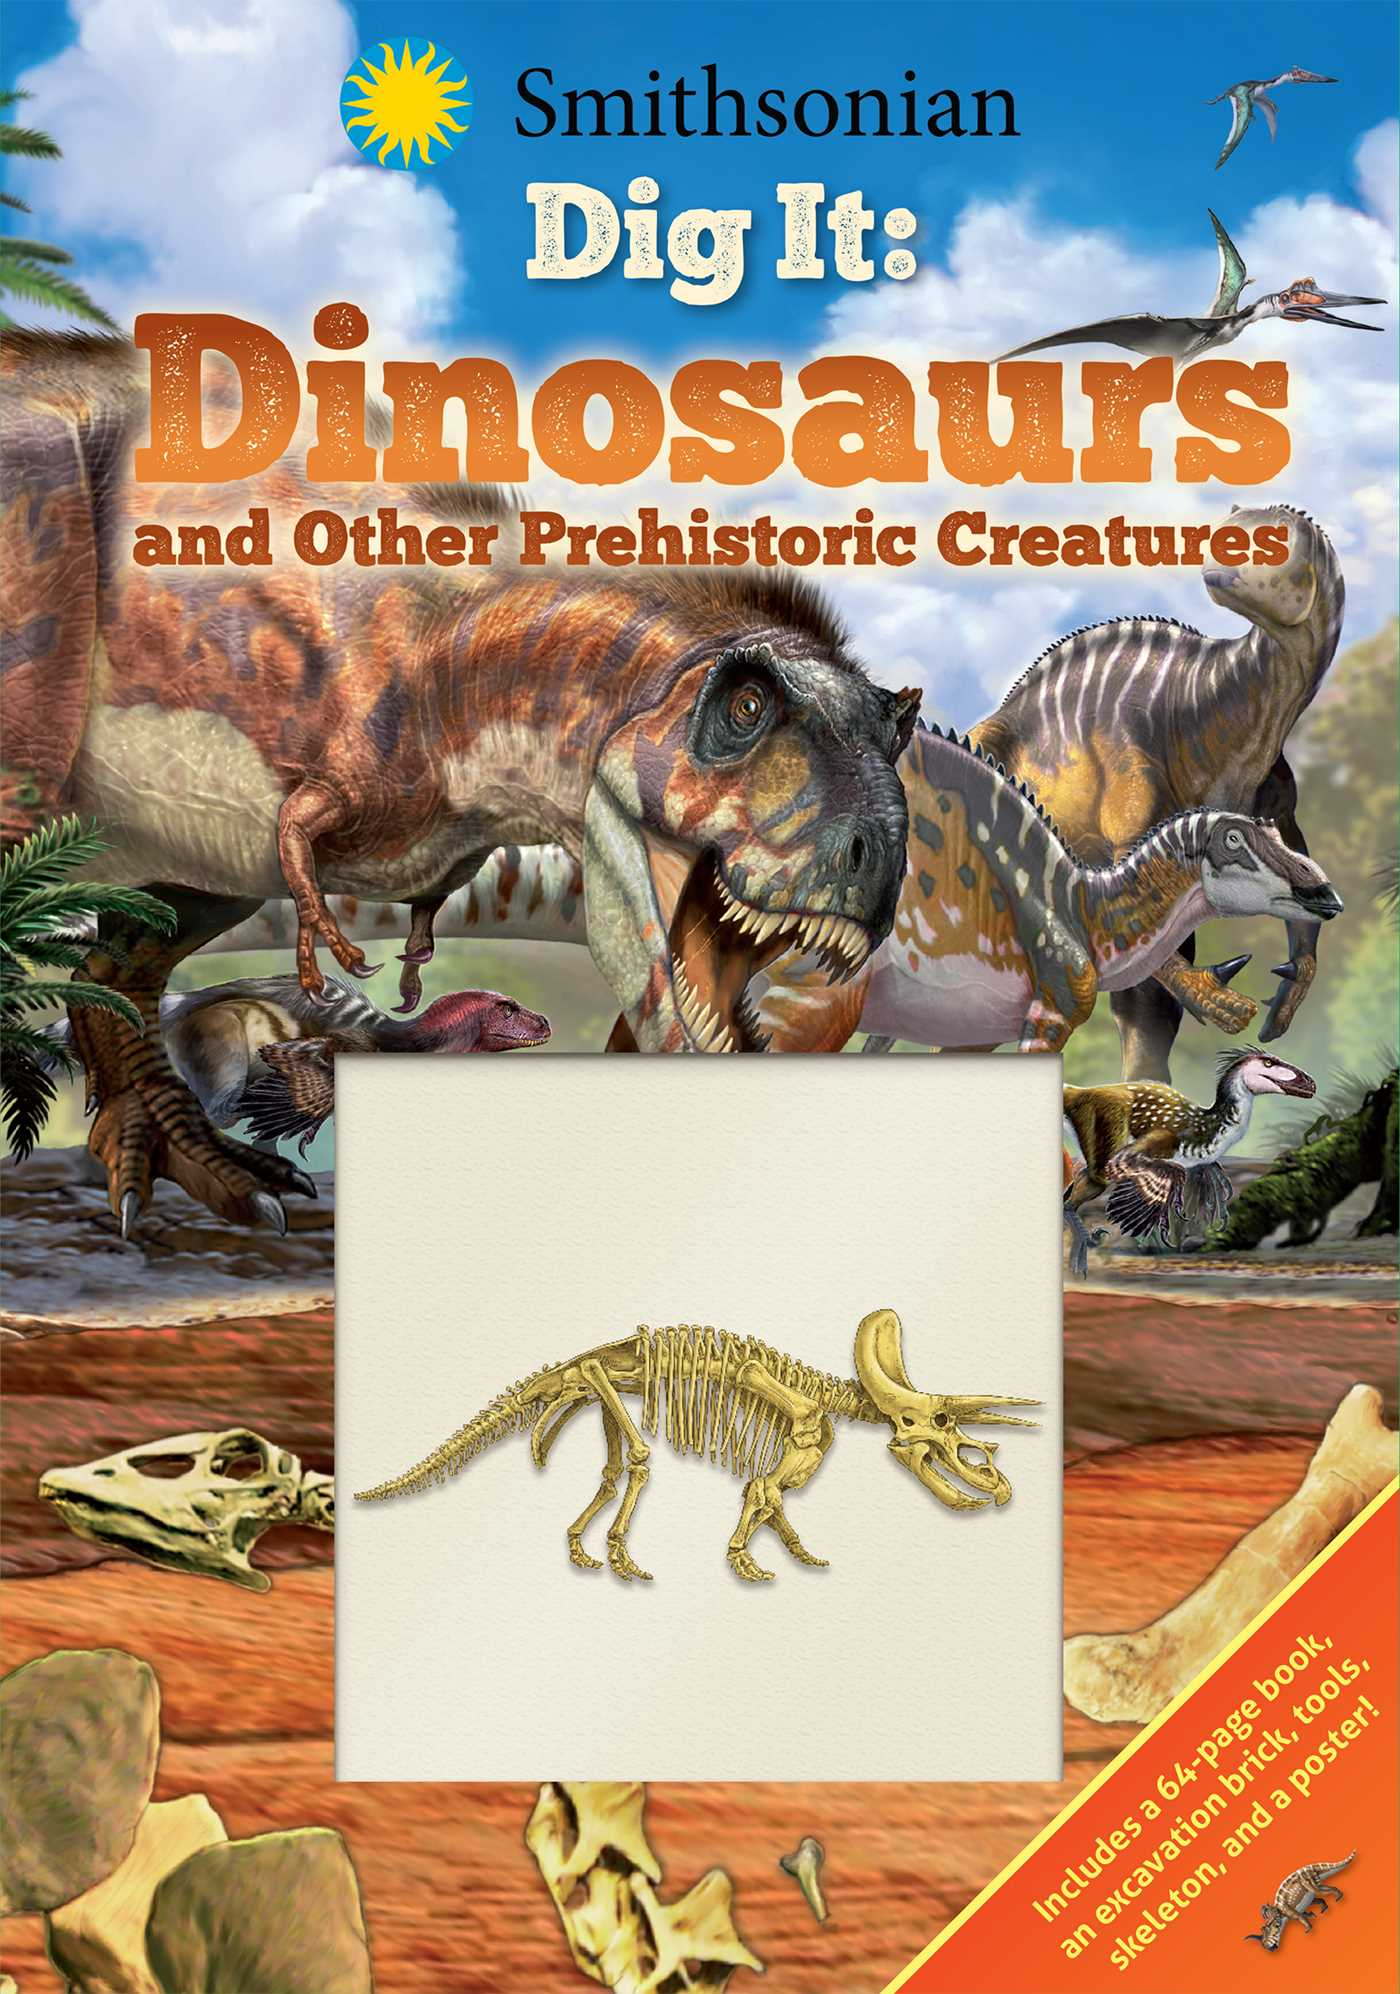 Smithsonian dig it dinosaurs other prehistoric creatures 9781684123193 hr